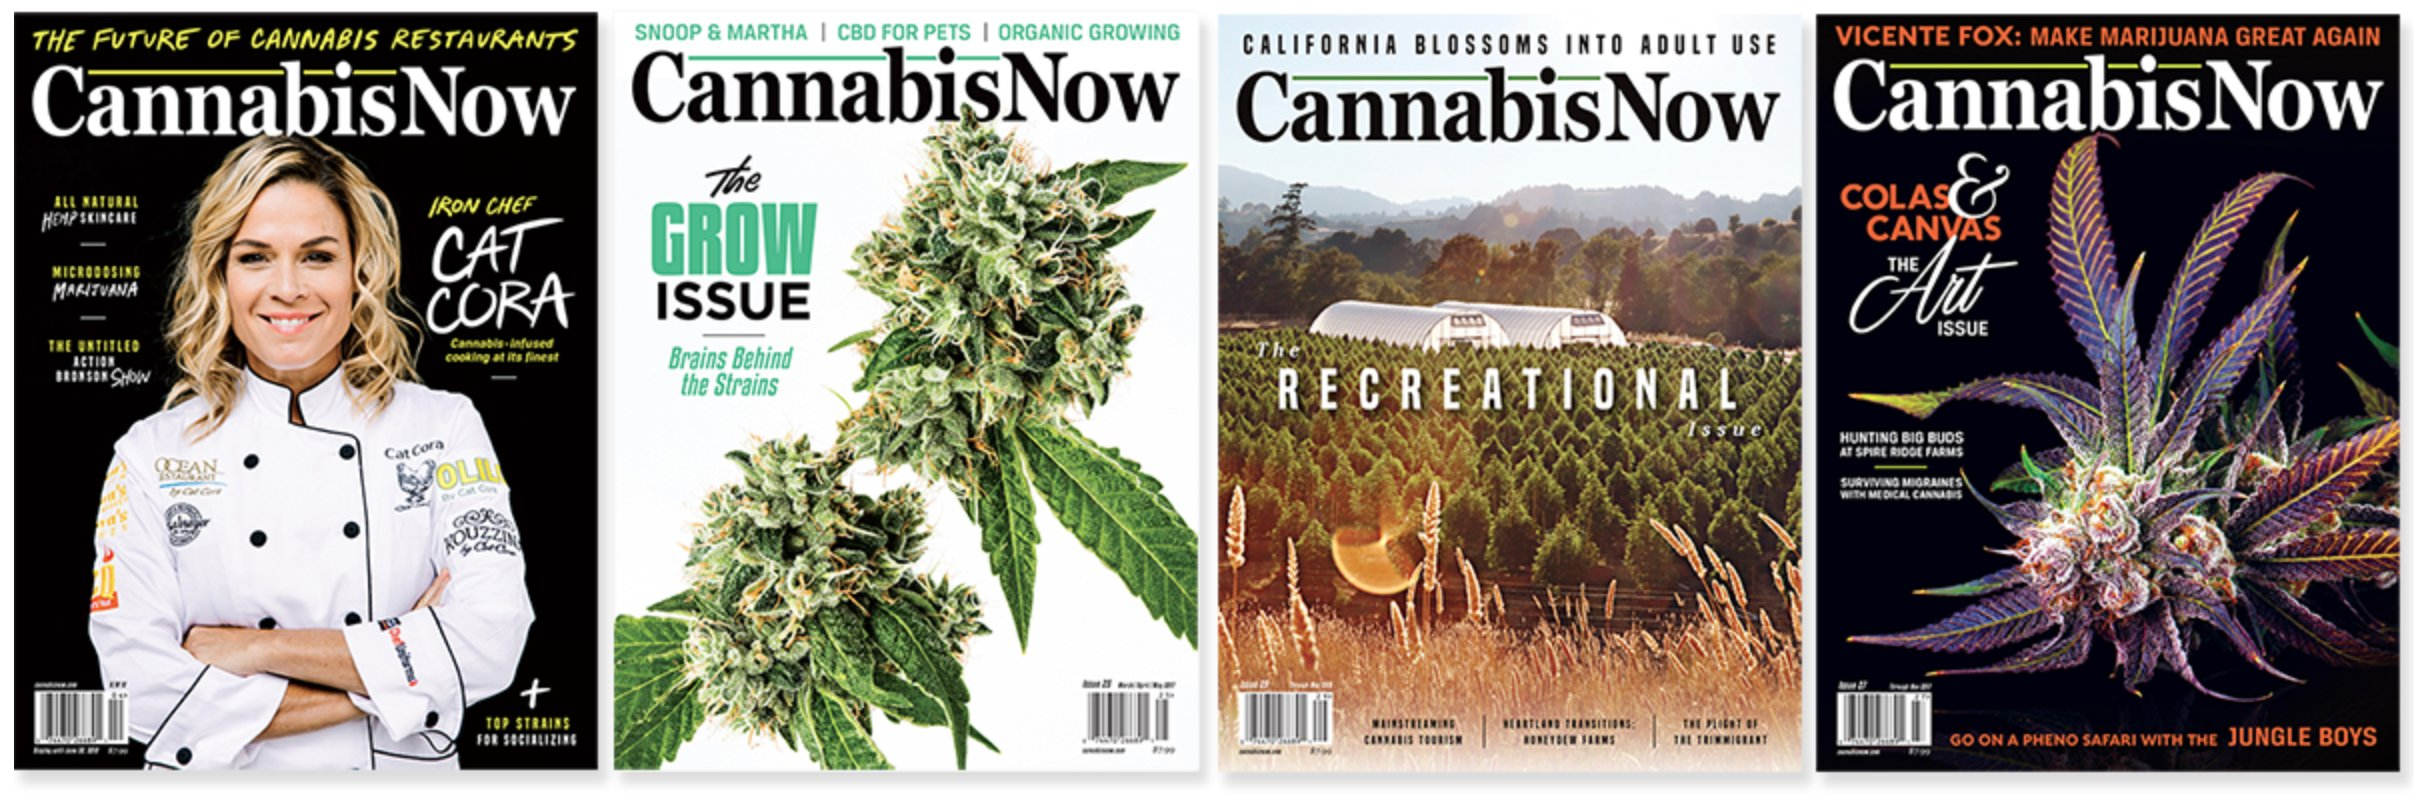 """""""Cannabis is Still Five Years Away From Catching up to Where the Pharmaceutical Companies are or the Big Brands of the World the Nike's and the Budweiser's..."""""""